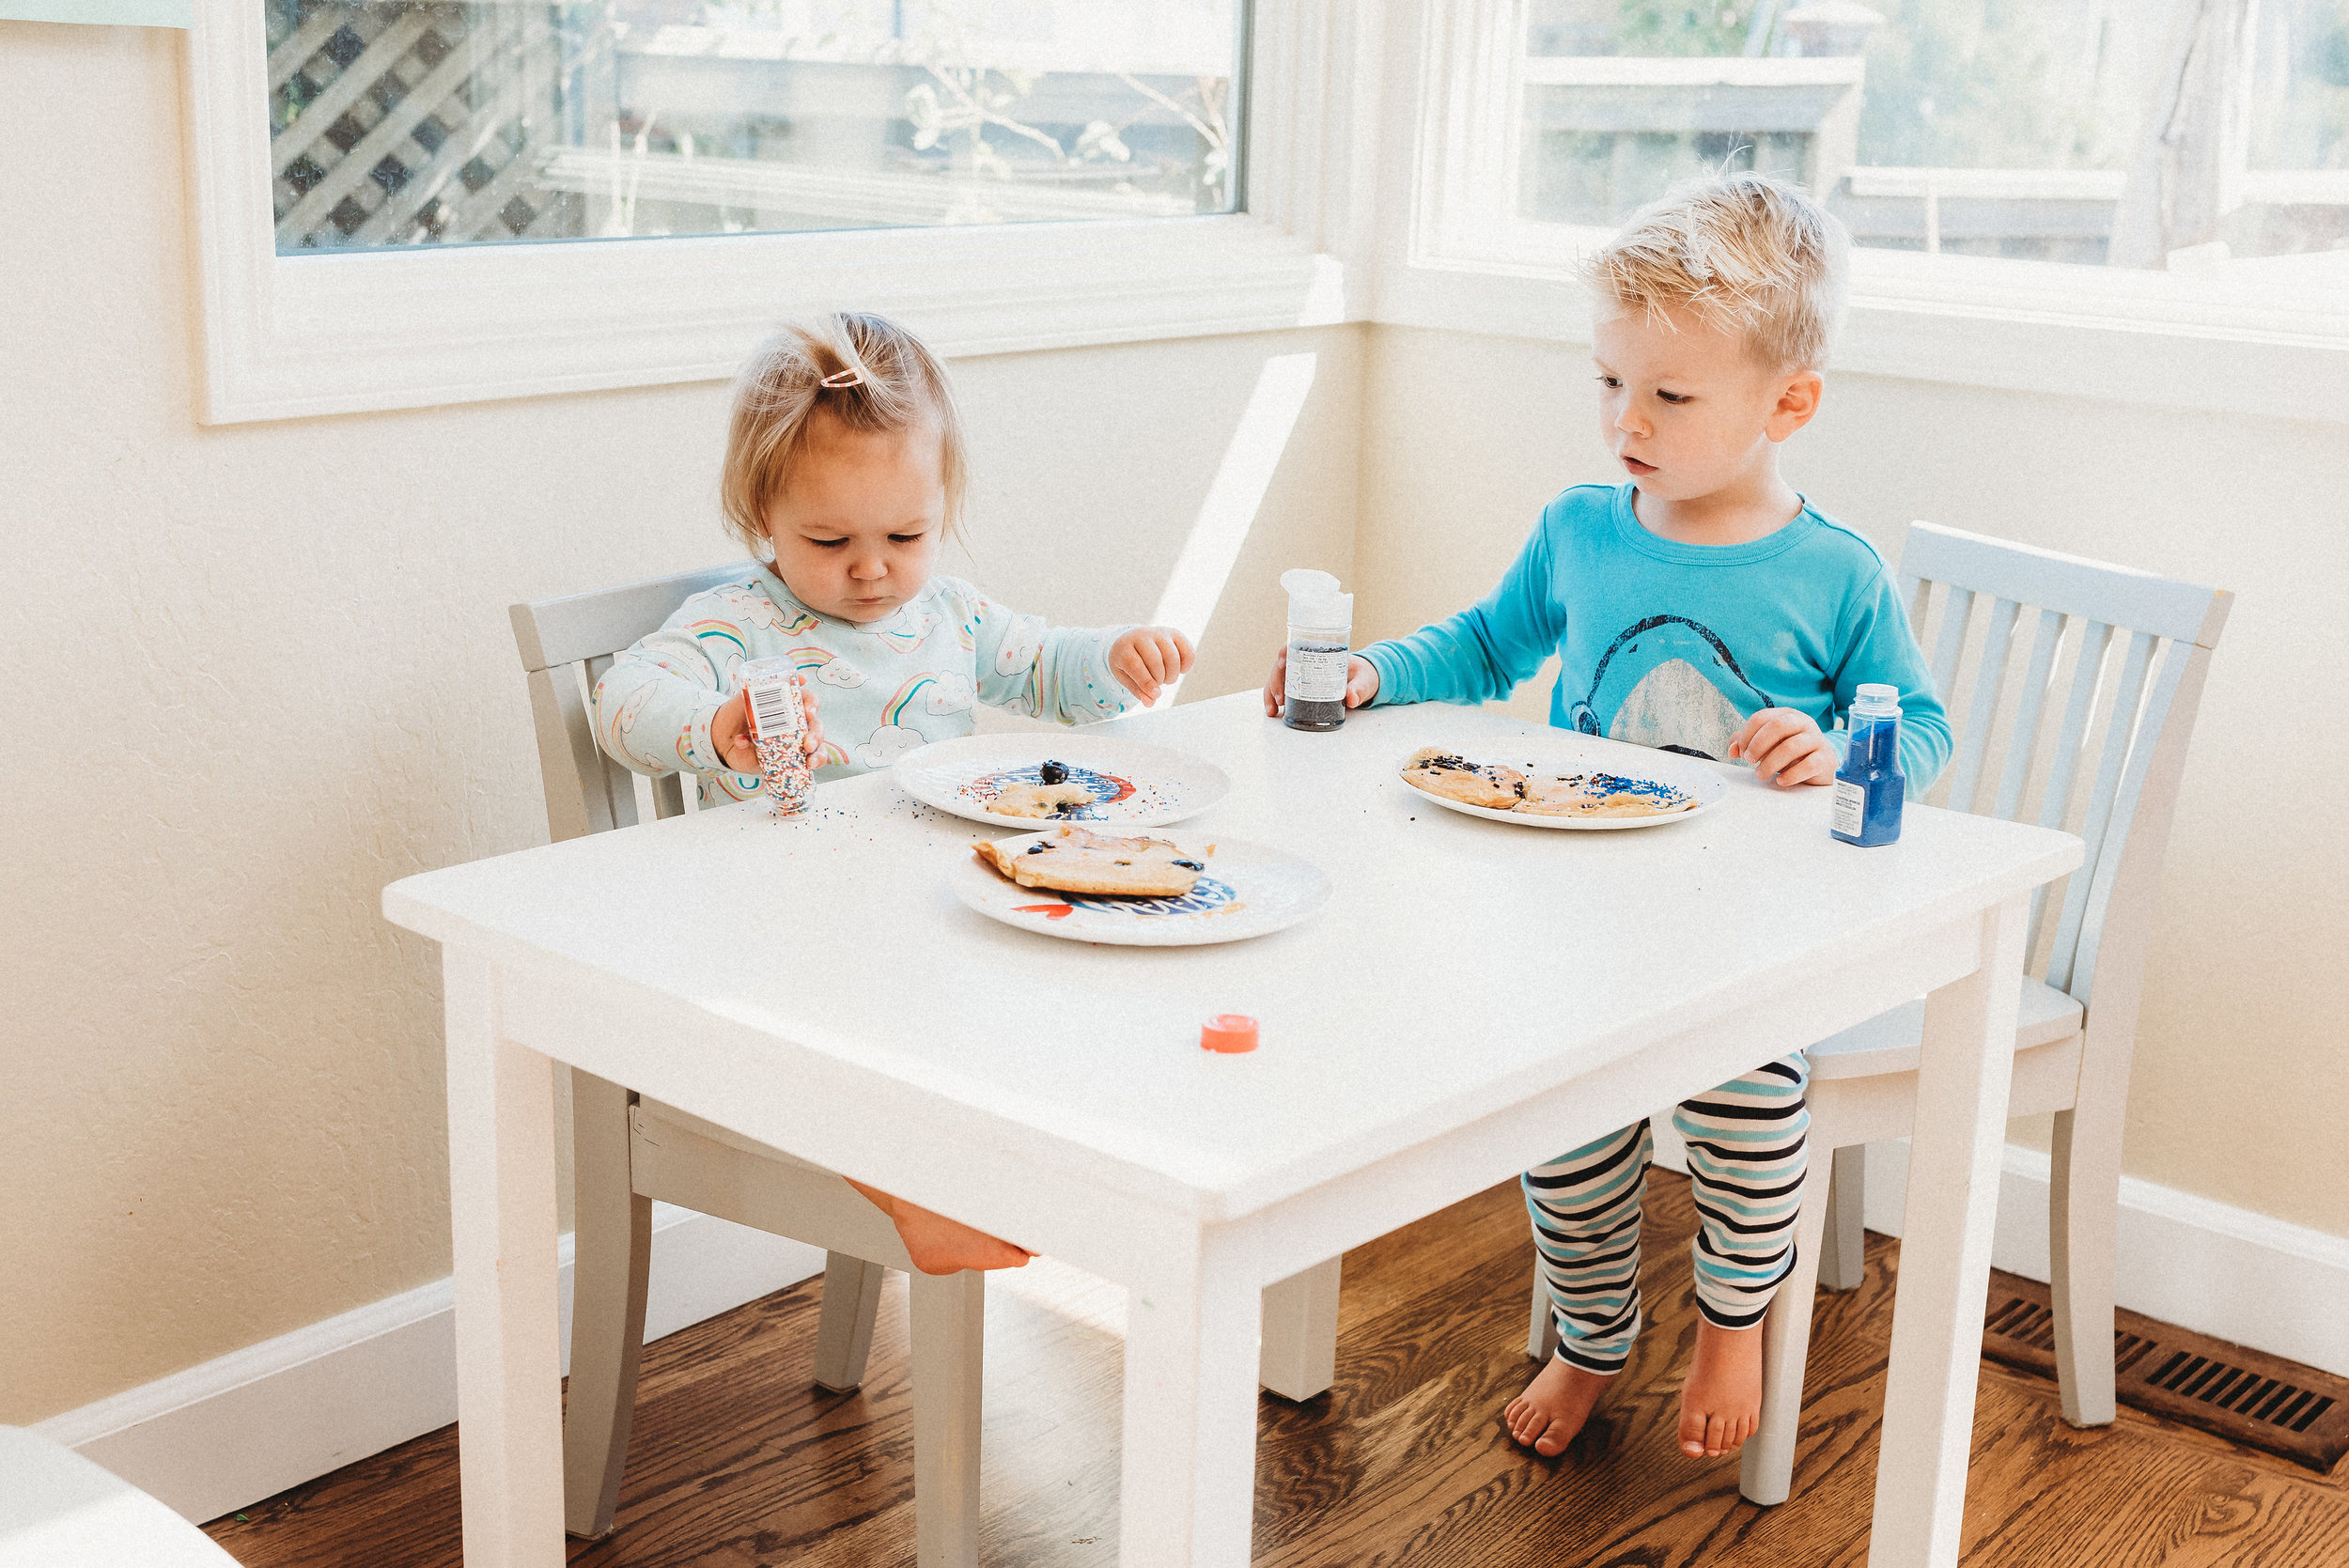 family pancakes morning routine mom of two toddlers pj mornings family time quality time41.jpg